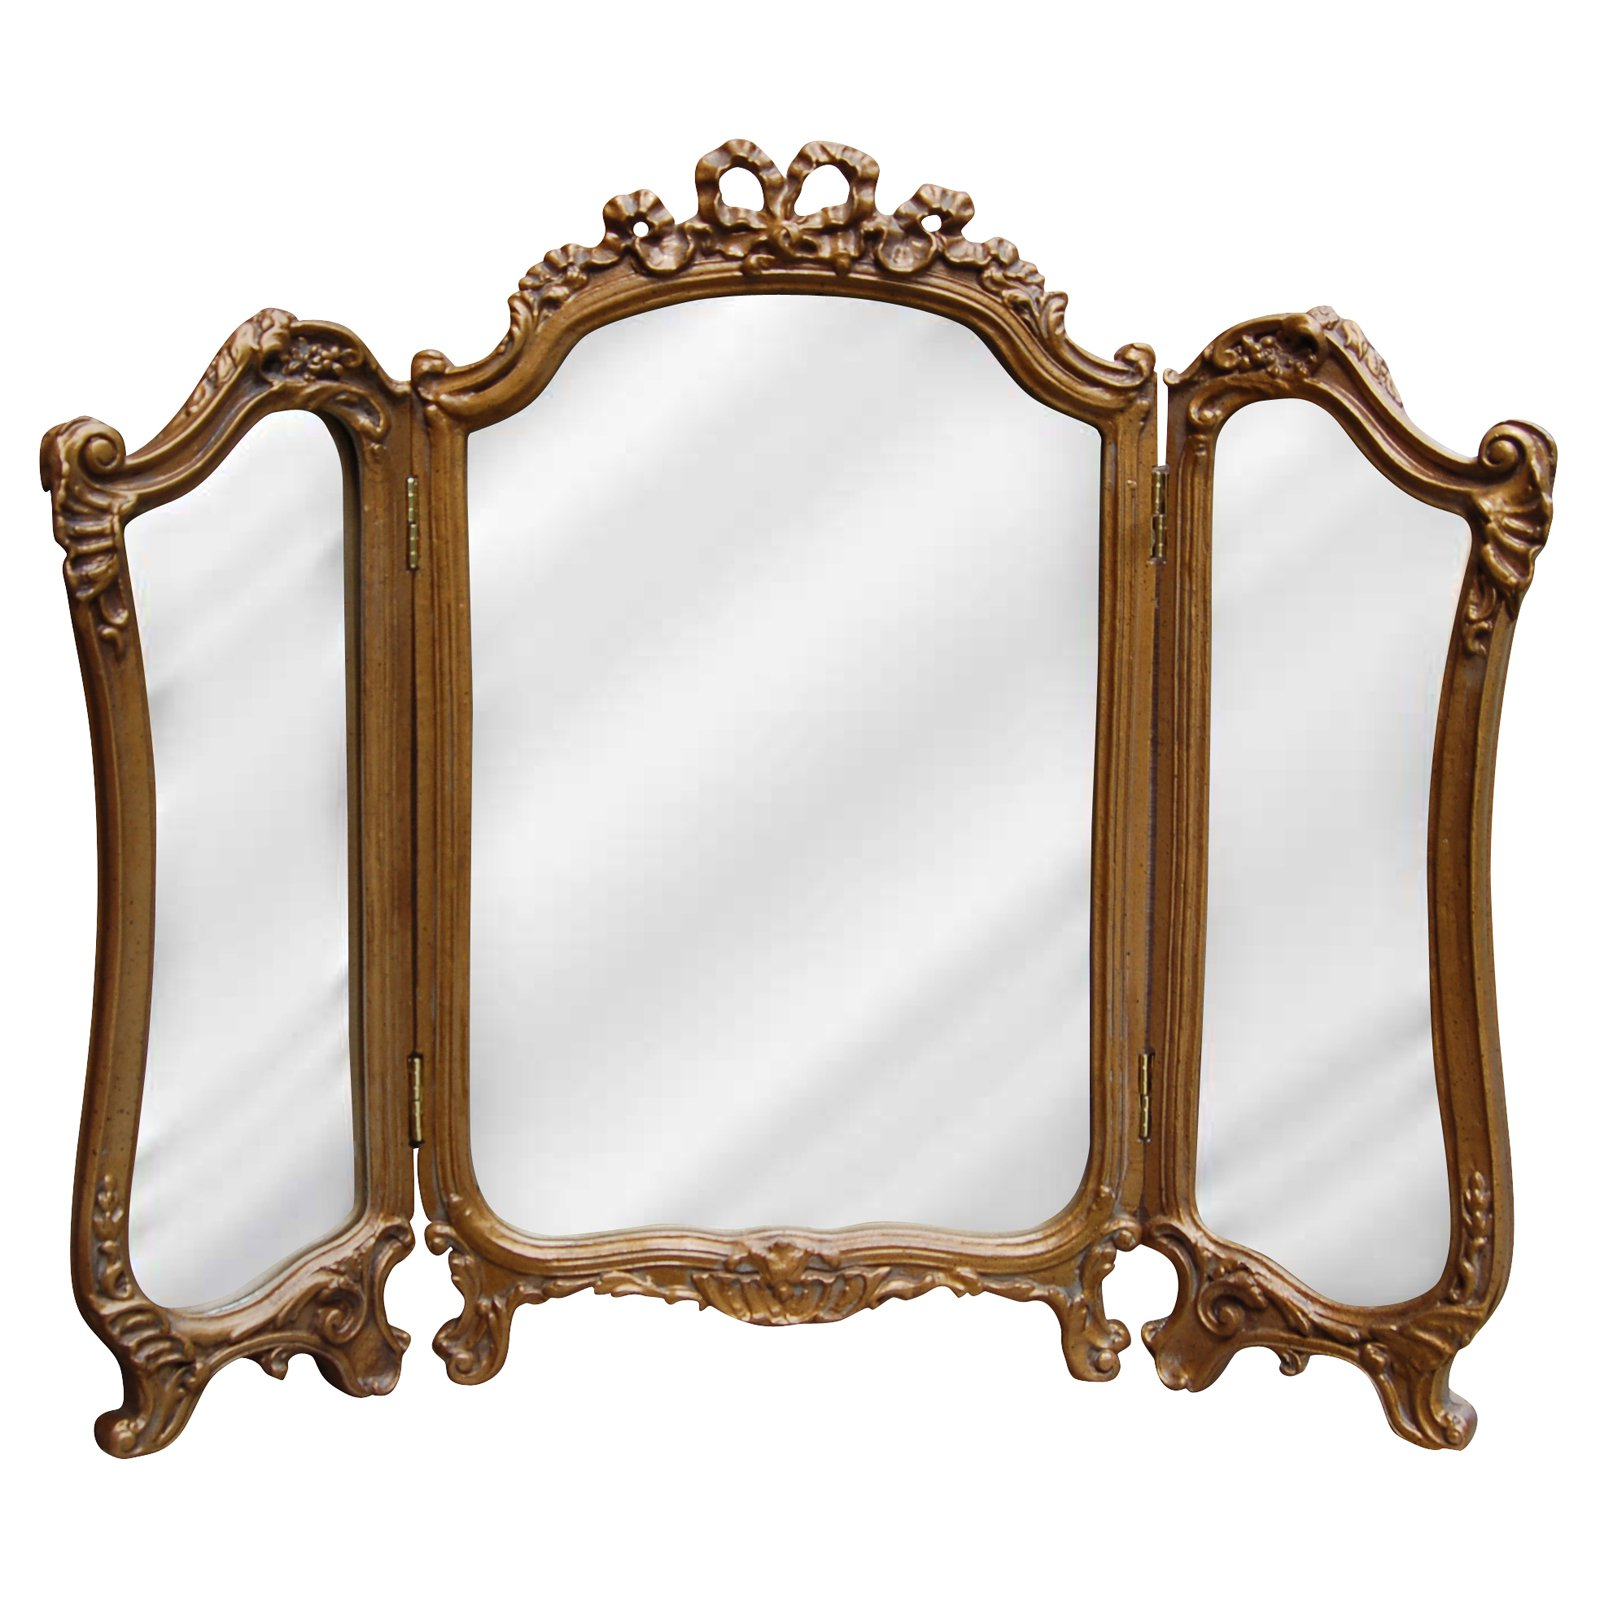 Bathroom mirrors framed 40 inch - Vanity Mirrors